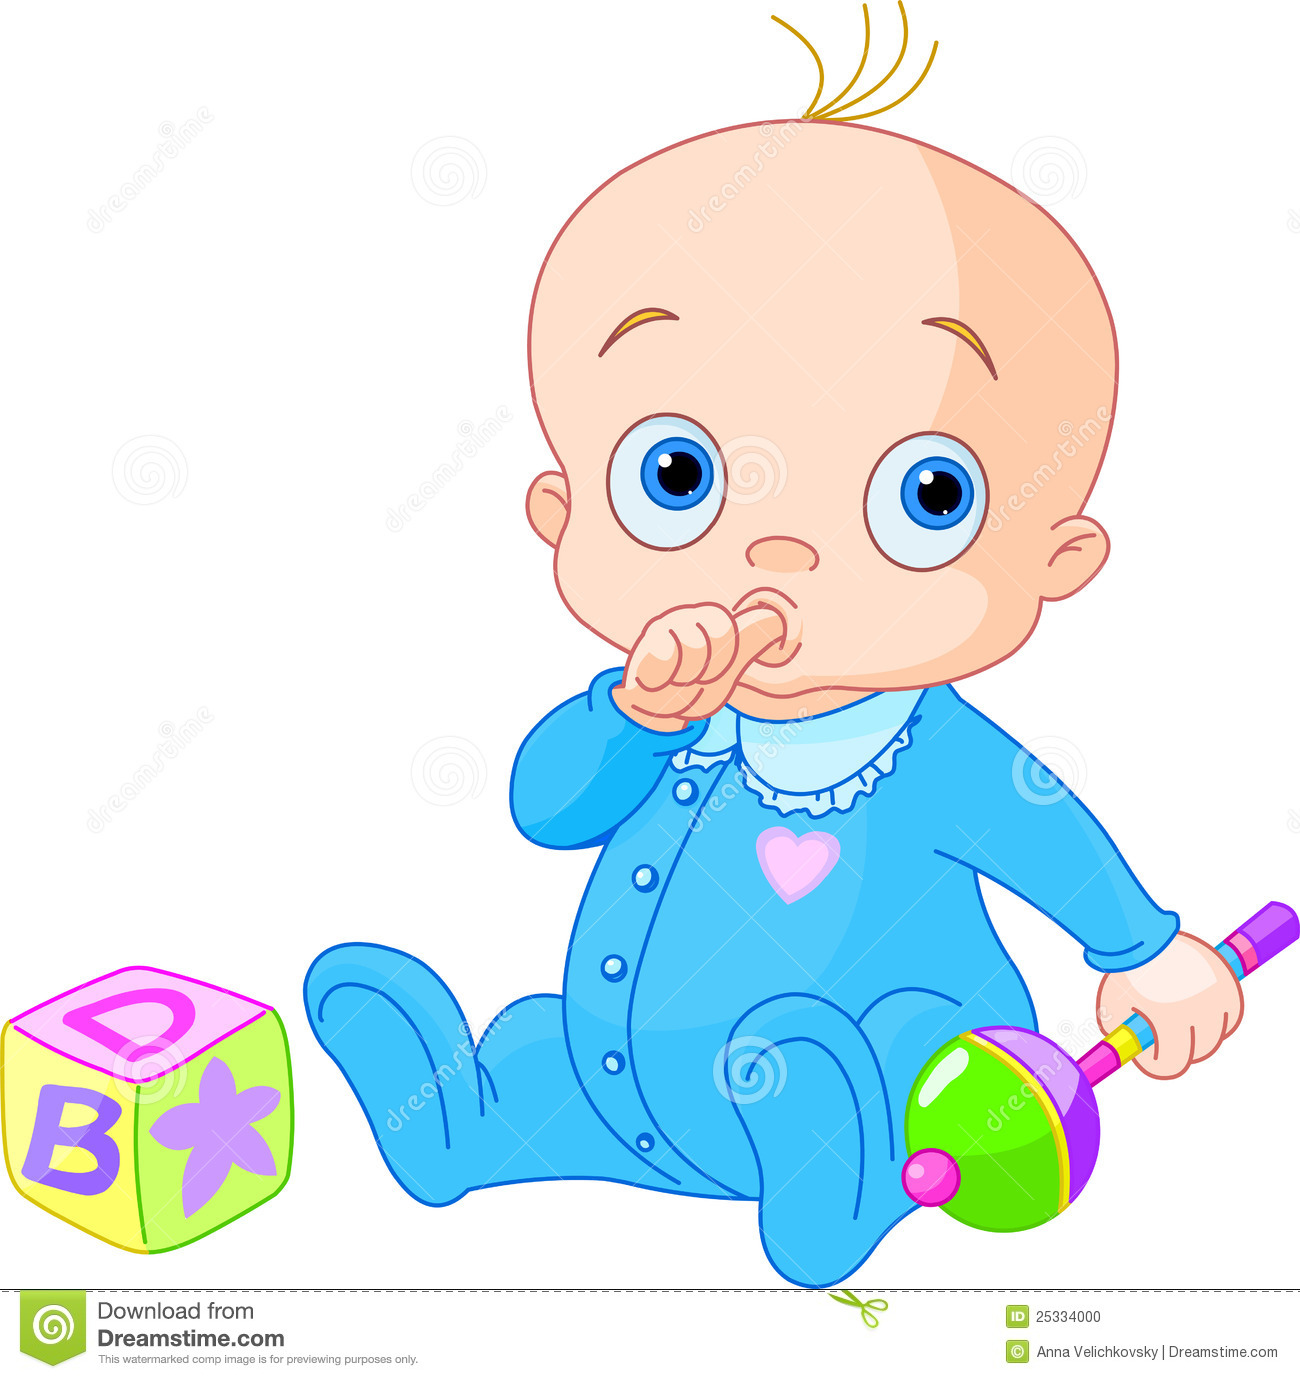 Sweet baby boy stock vector. Illustration of child, clip ...